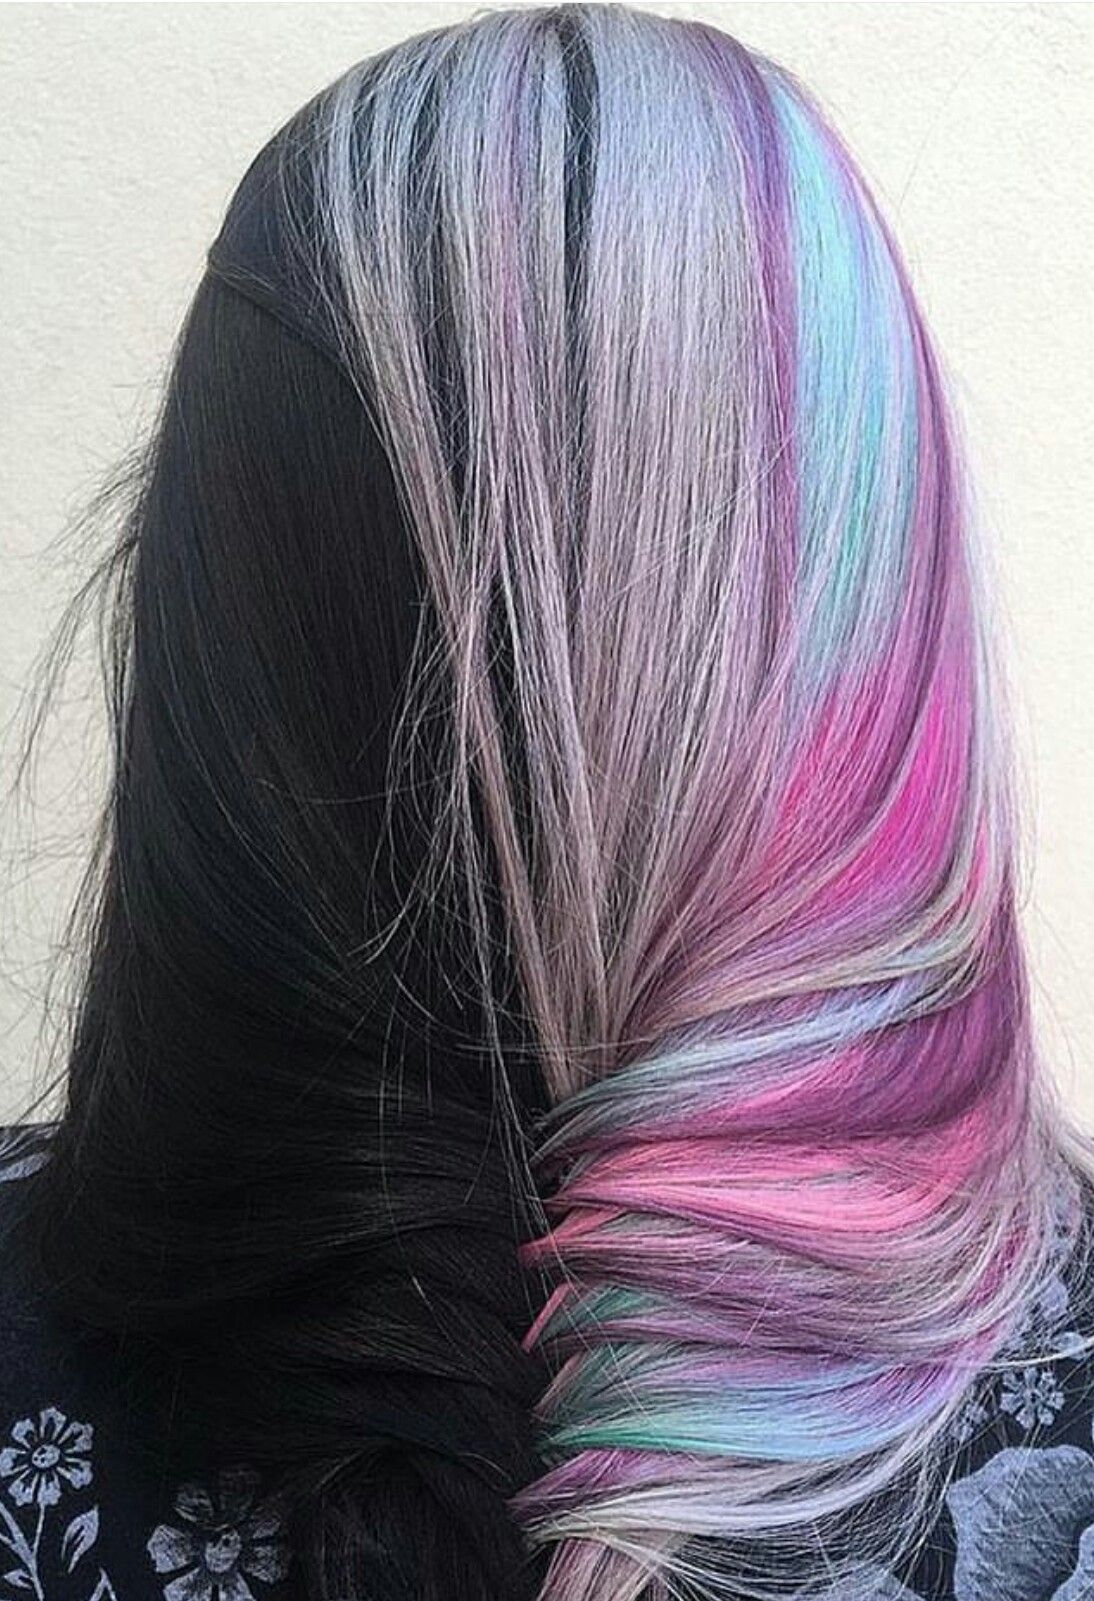 Half dyed fishtail braided hair color inspiration idea pastel